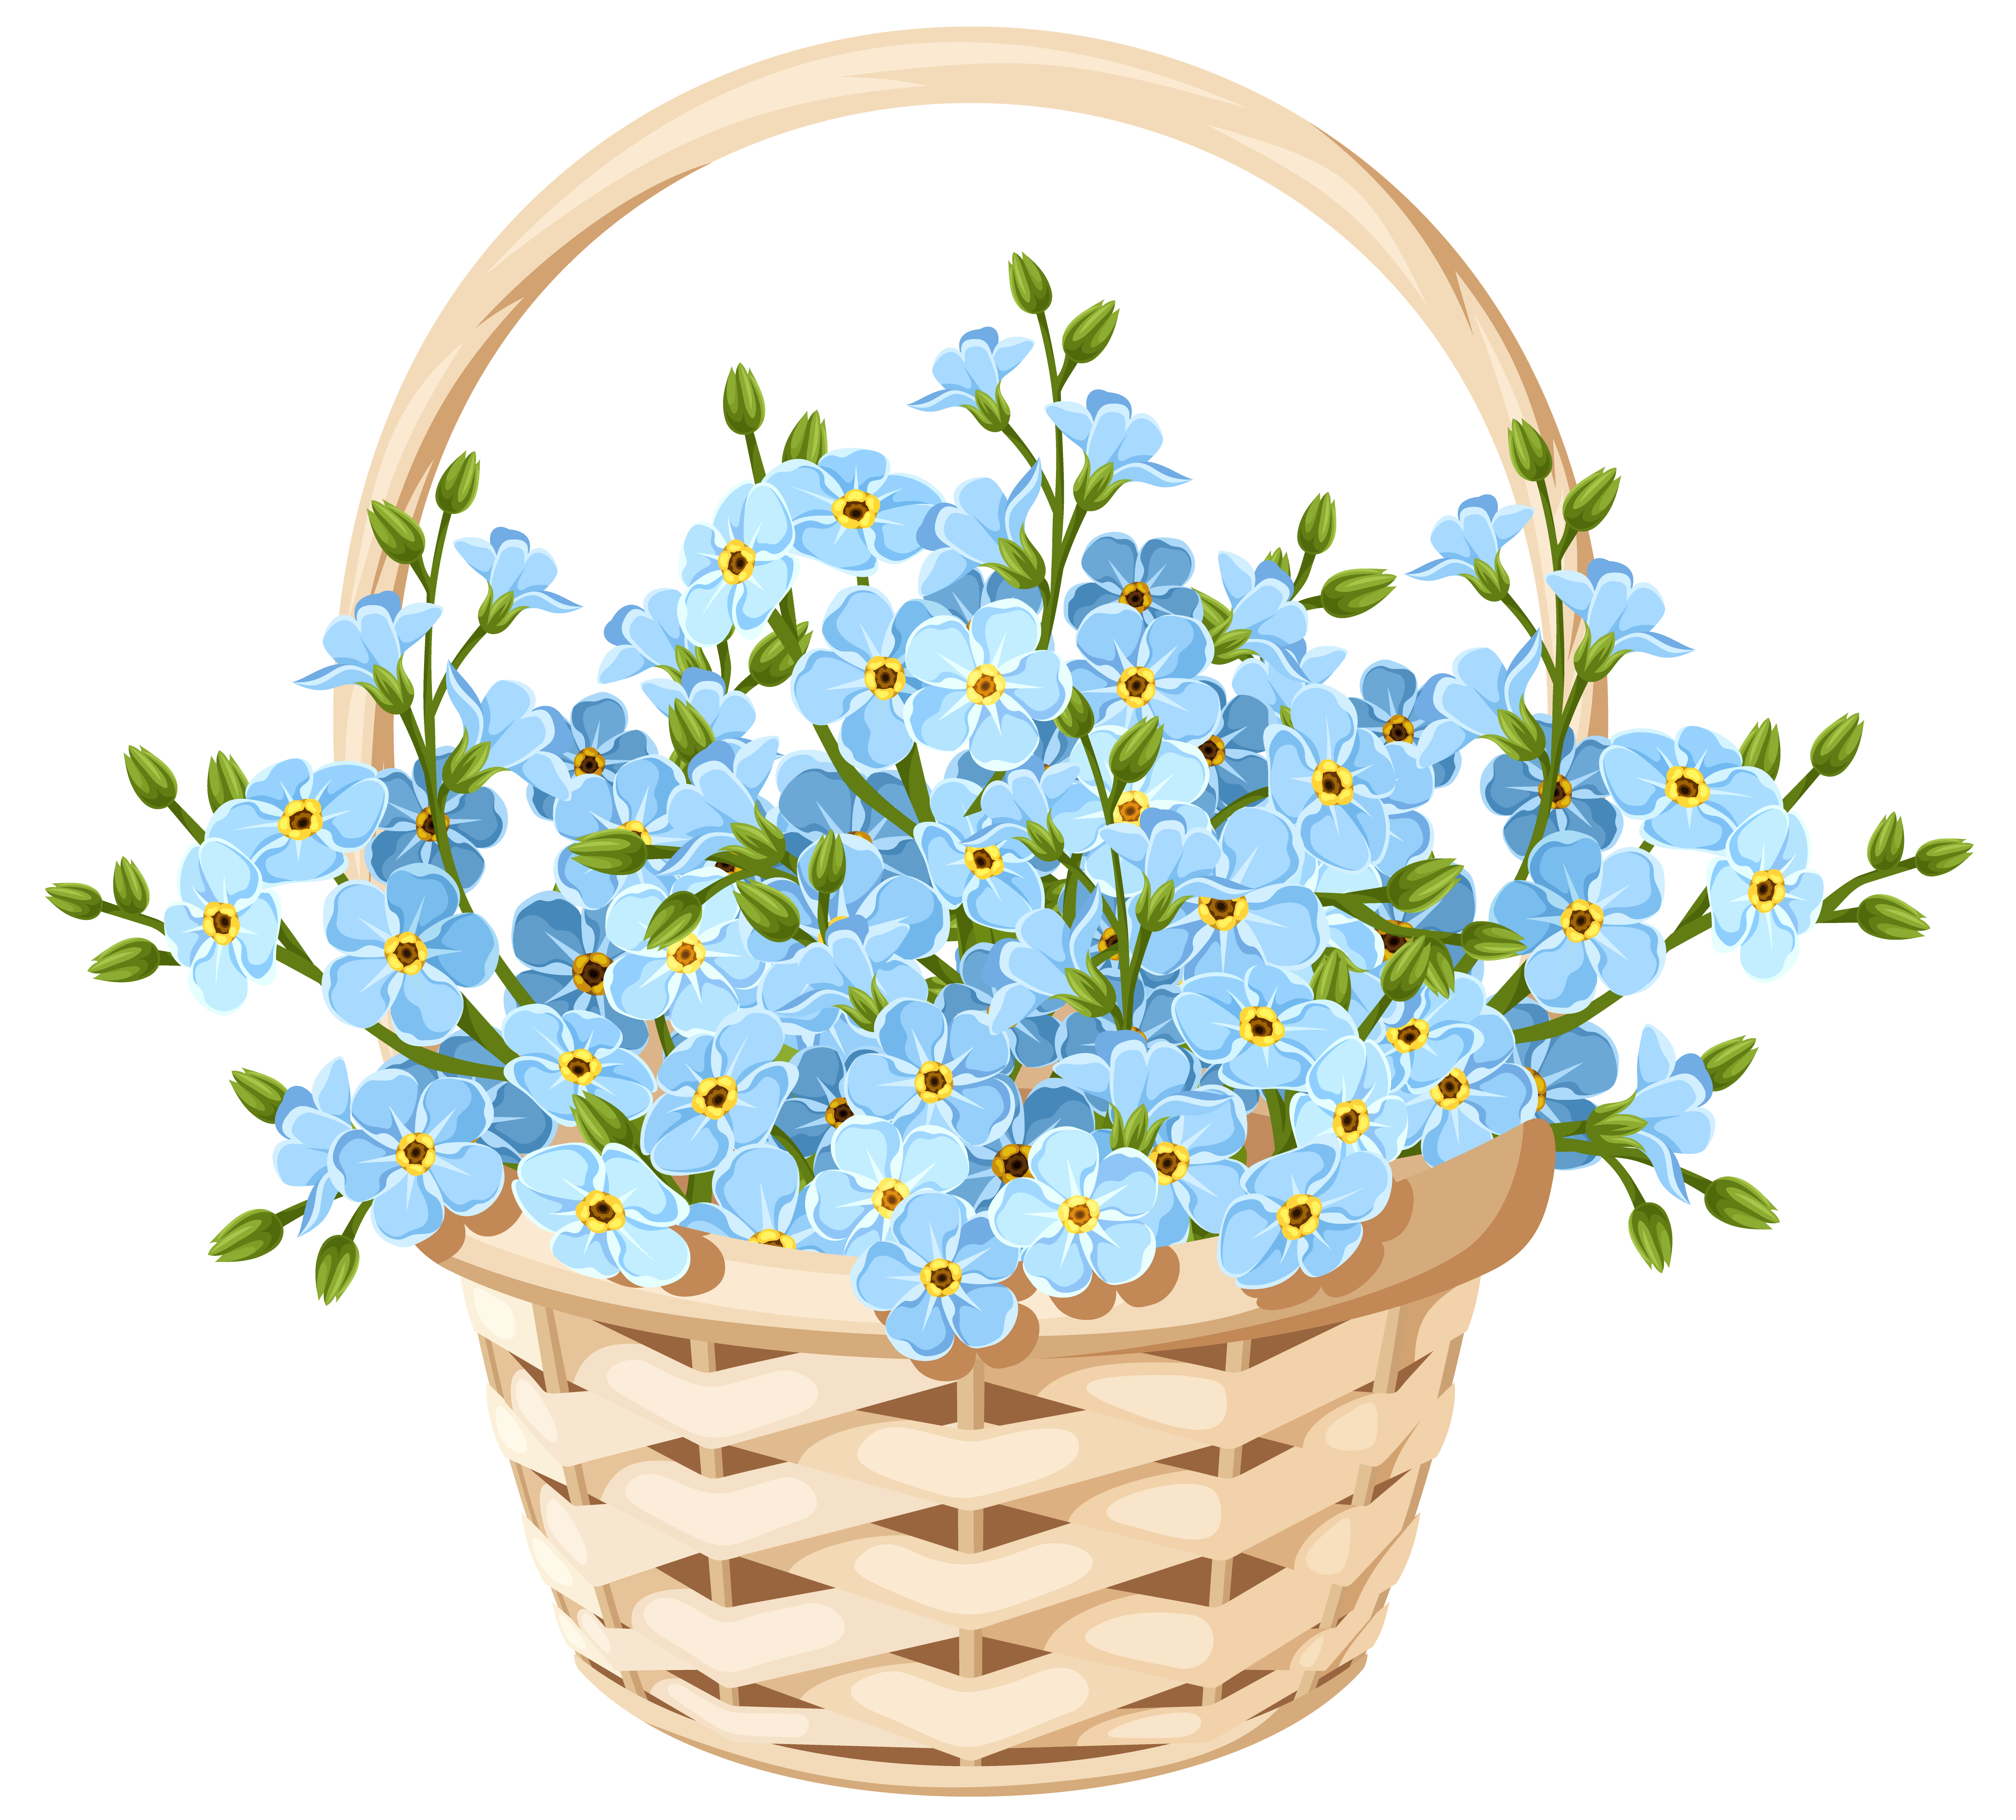 Clip art by Susan KleinEngel Flower basket